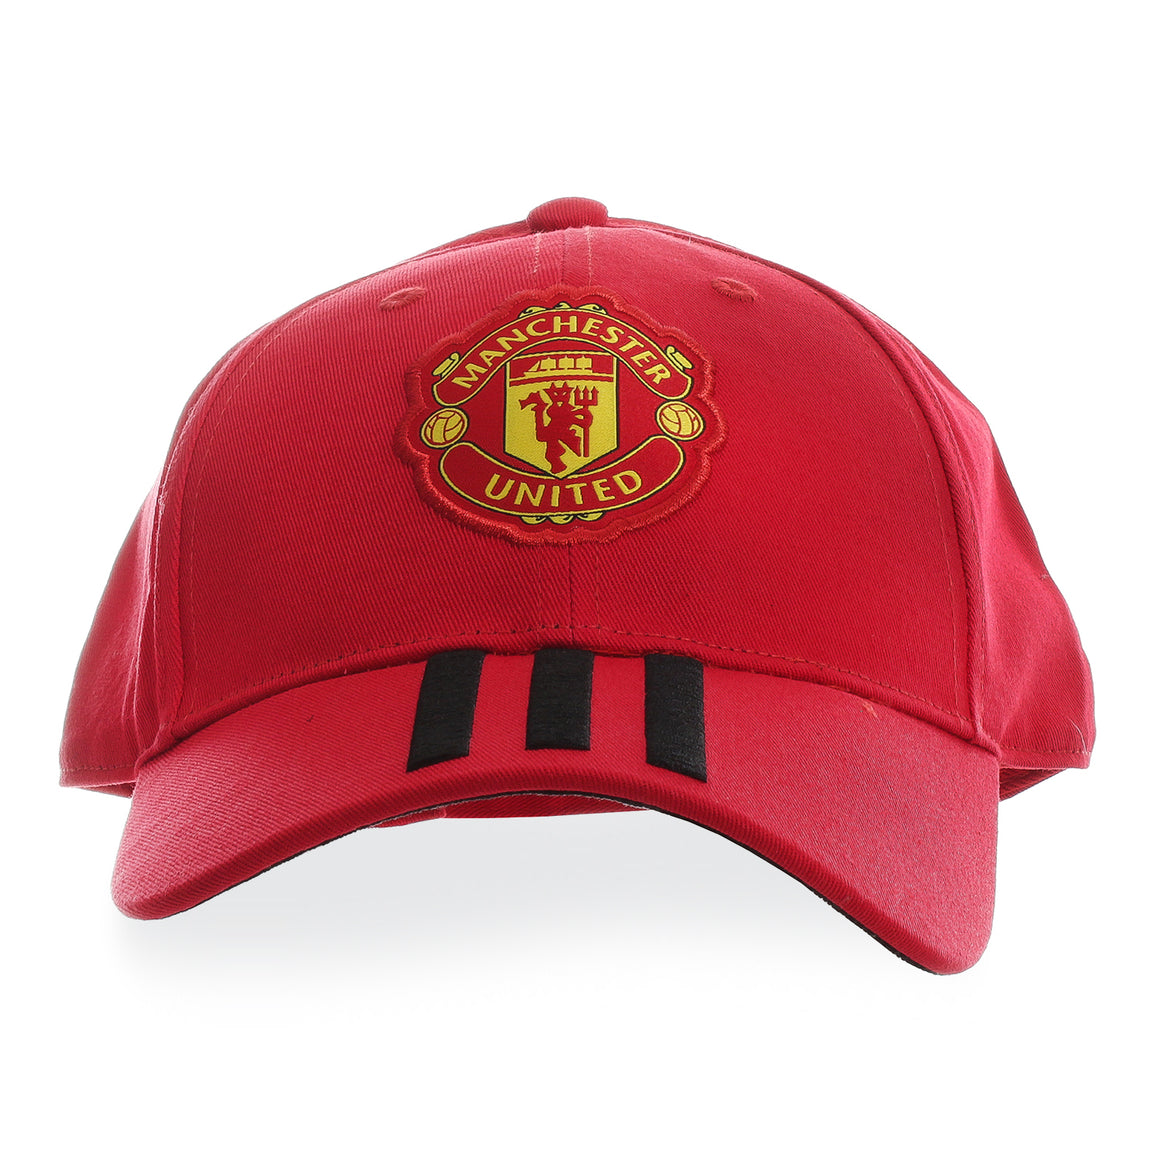 Manchester United 3-Stripes